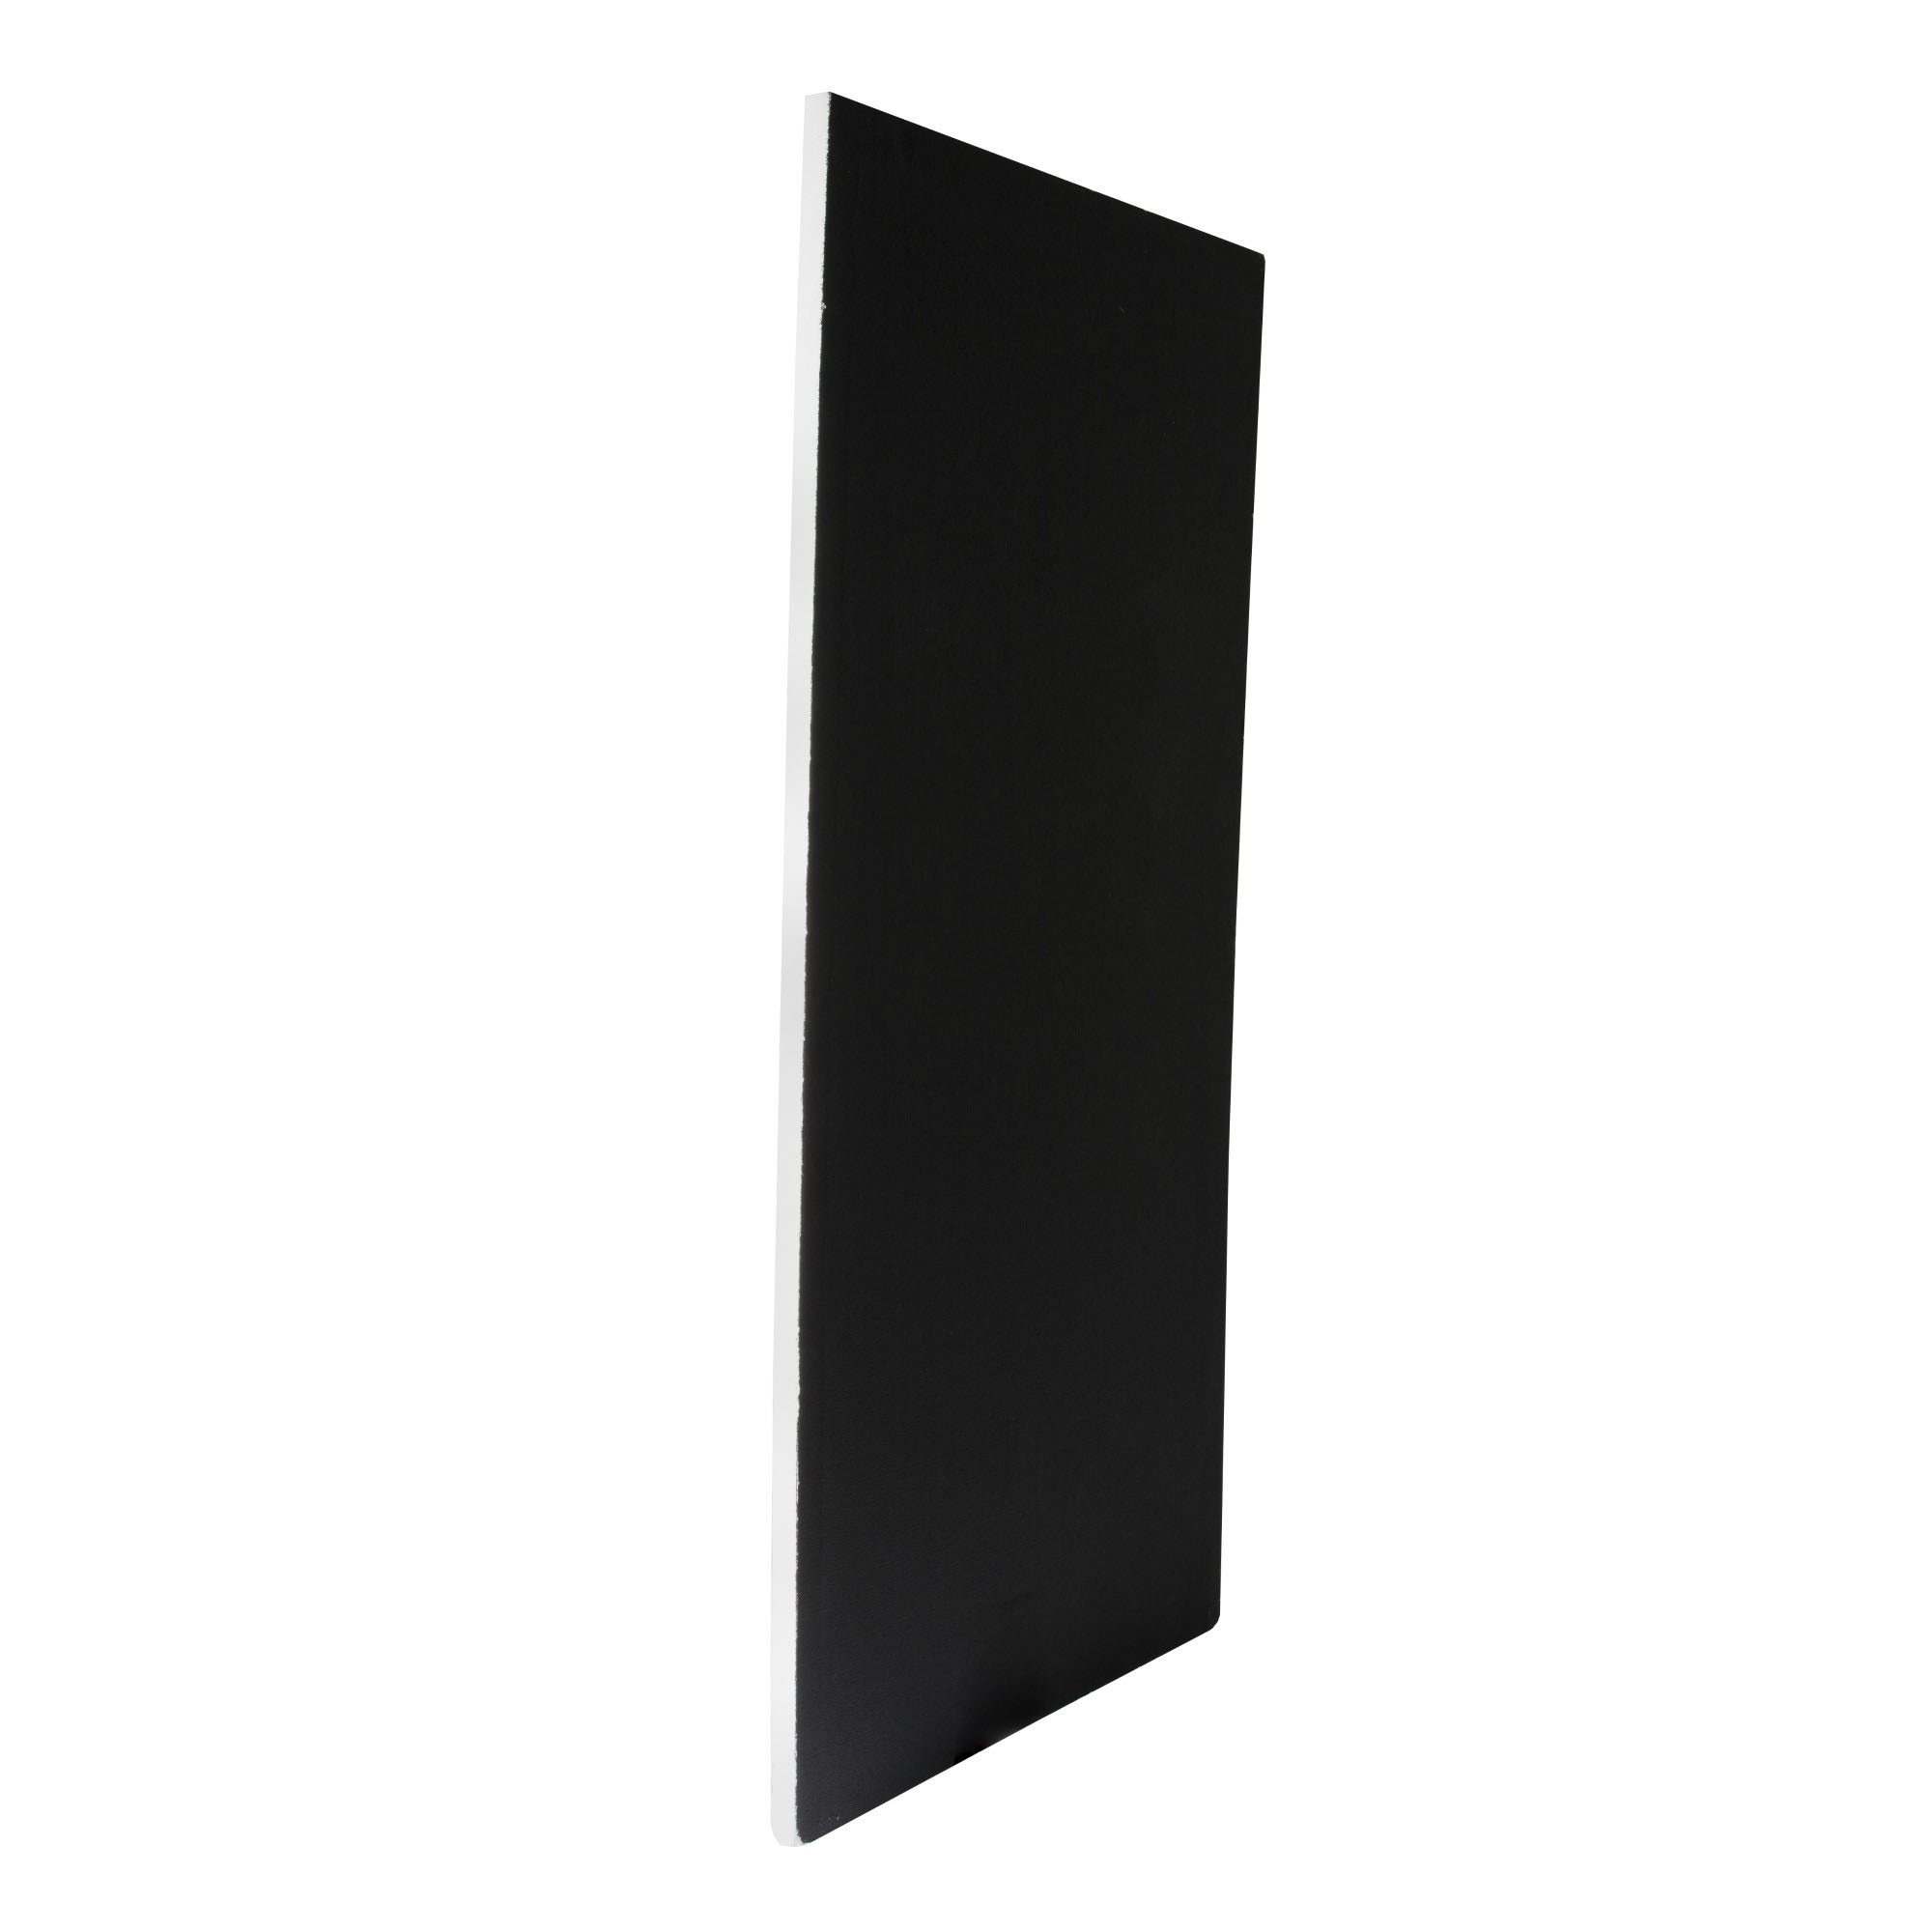 Two Inch 8x4ft Black/White Poly Board